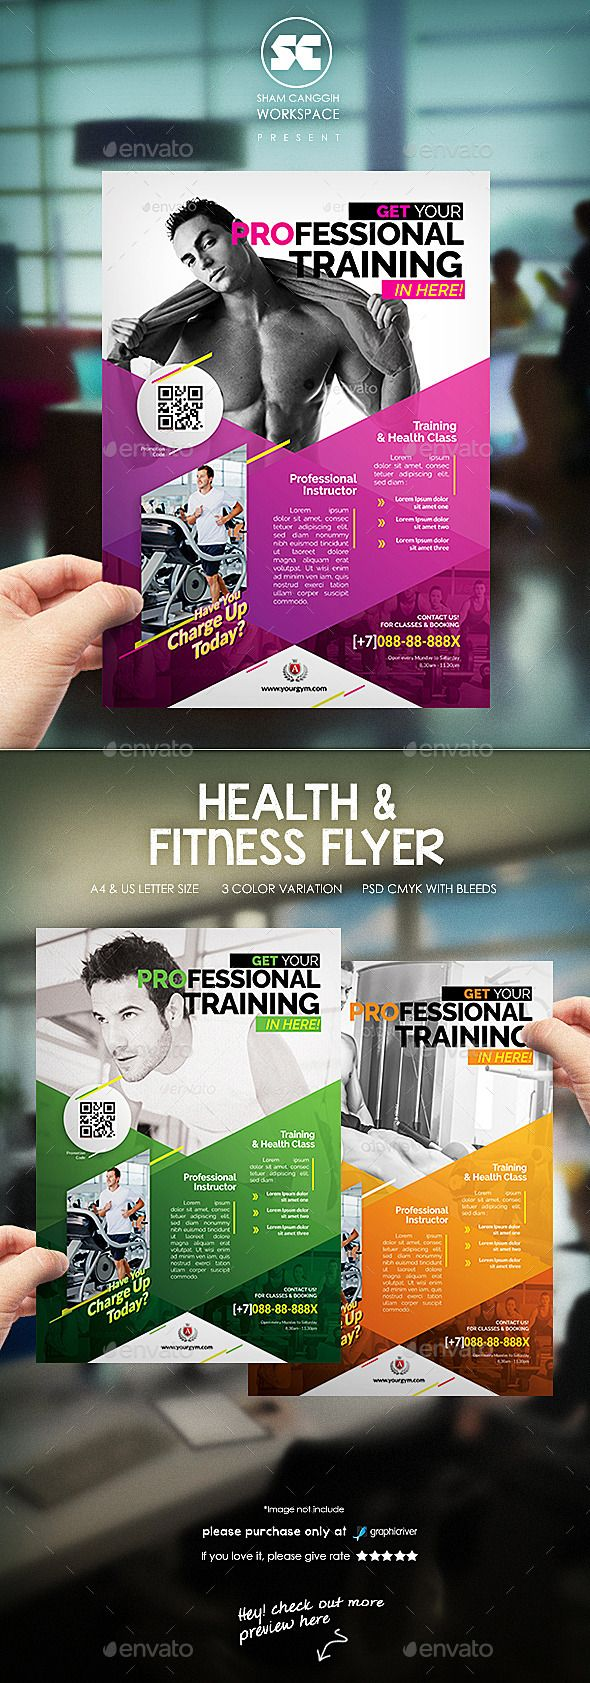 Fitness / Gym Flyer Template PSD #design Download: http://graphicriver.net/item/fitness-gym-flyer-template/12823317?ref=ksioks